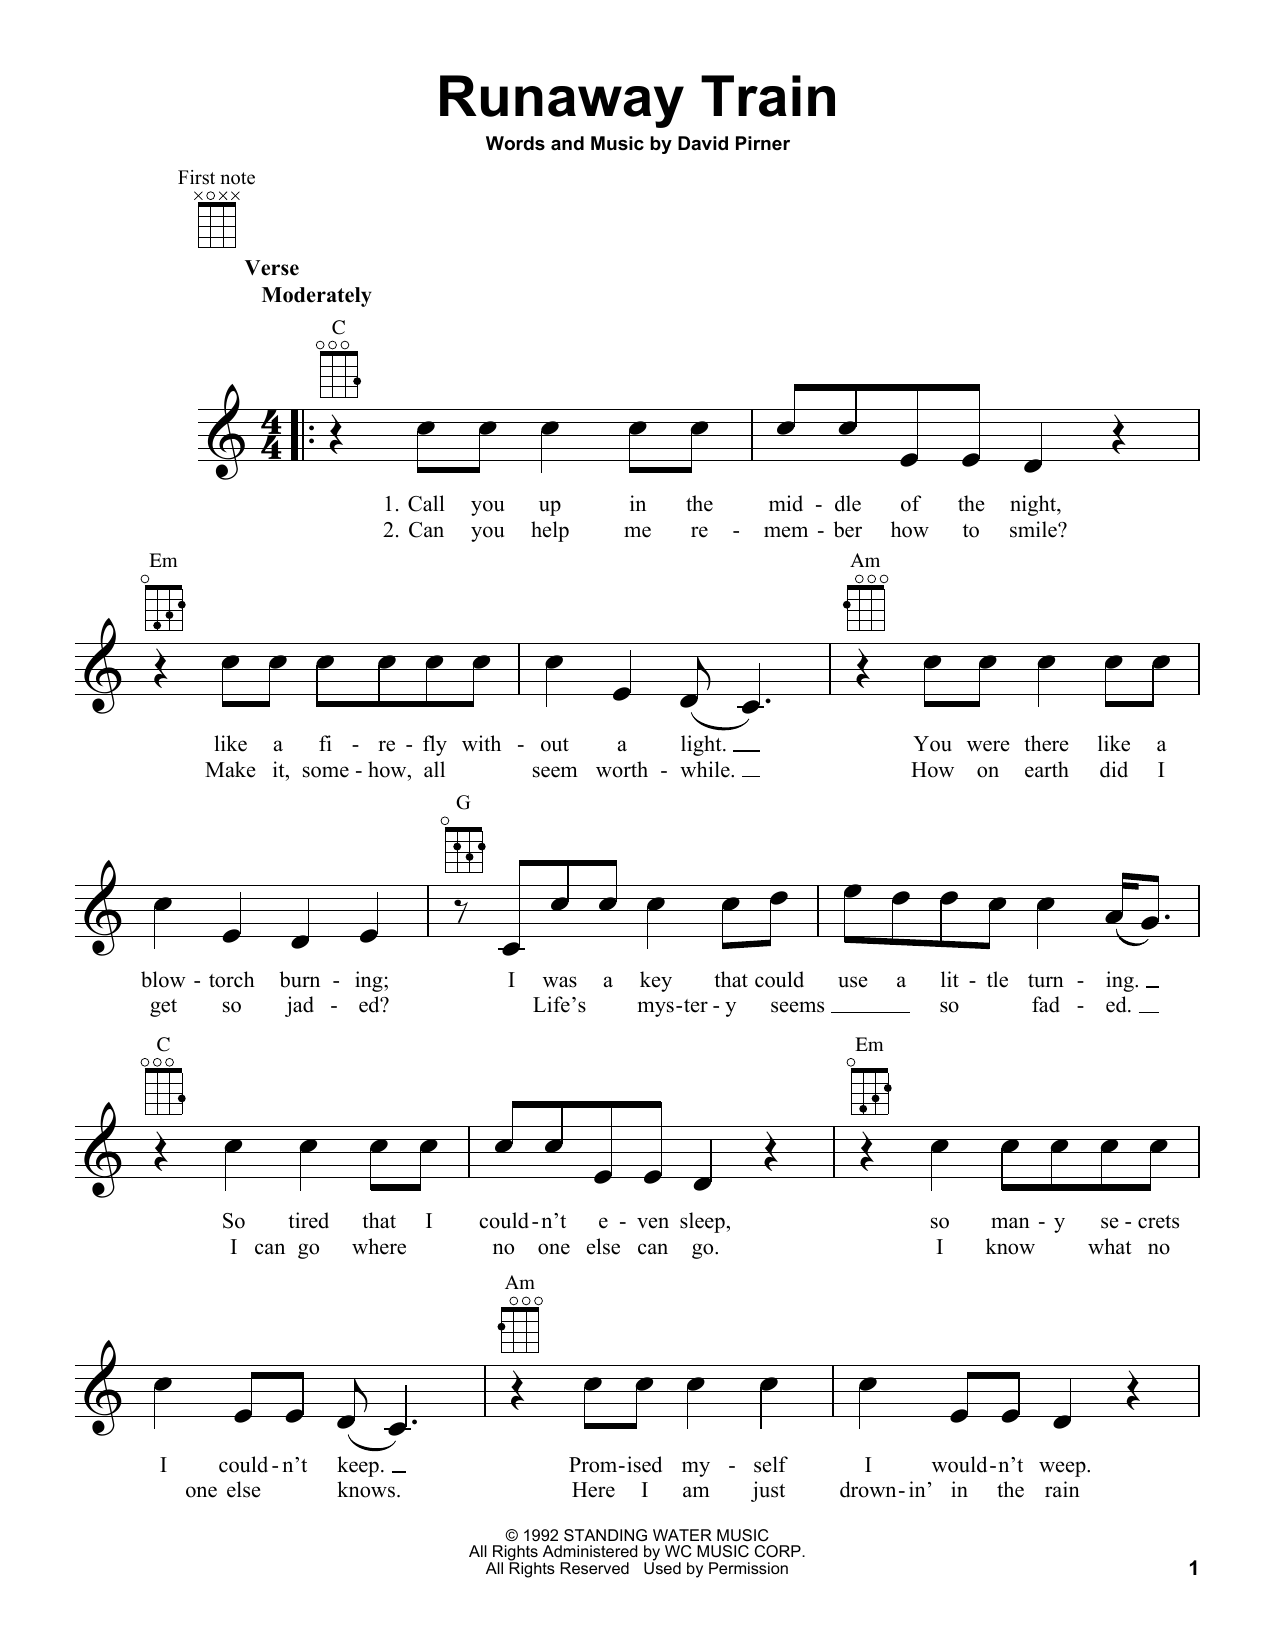 Sheet Music Digital Files To Print - Licensed Soul Asylum Digital ...